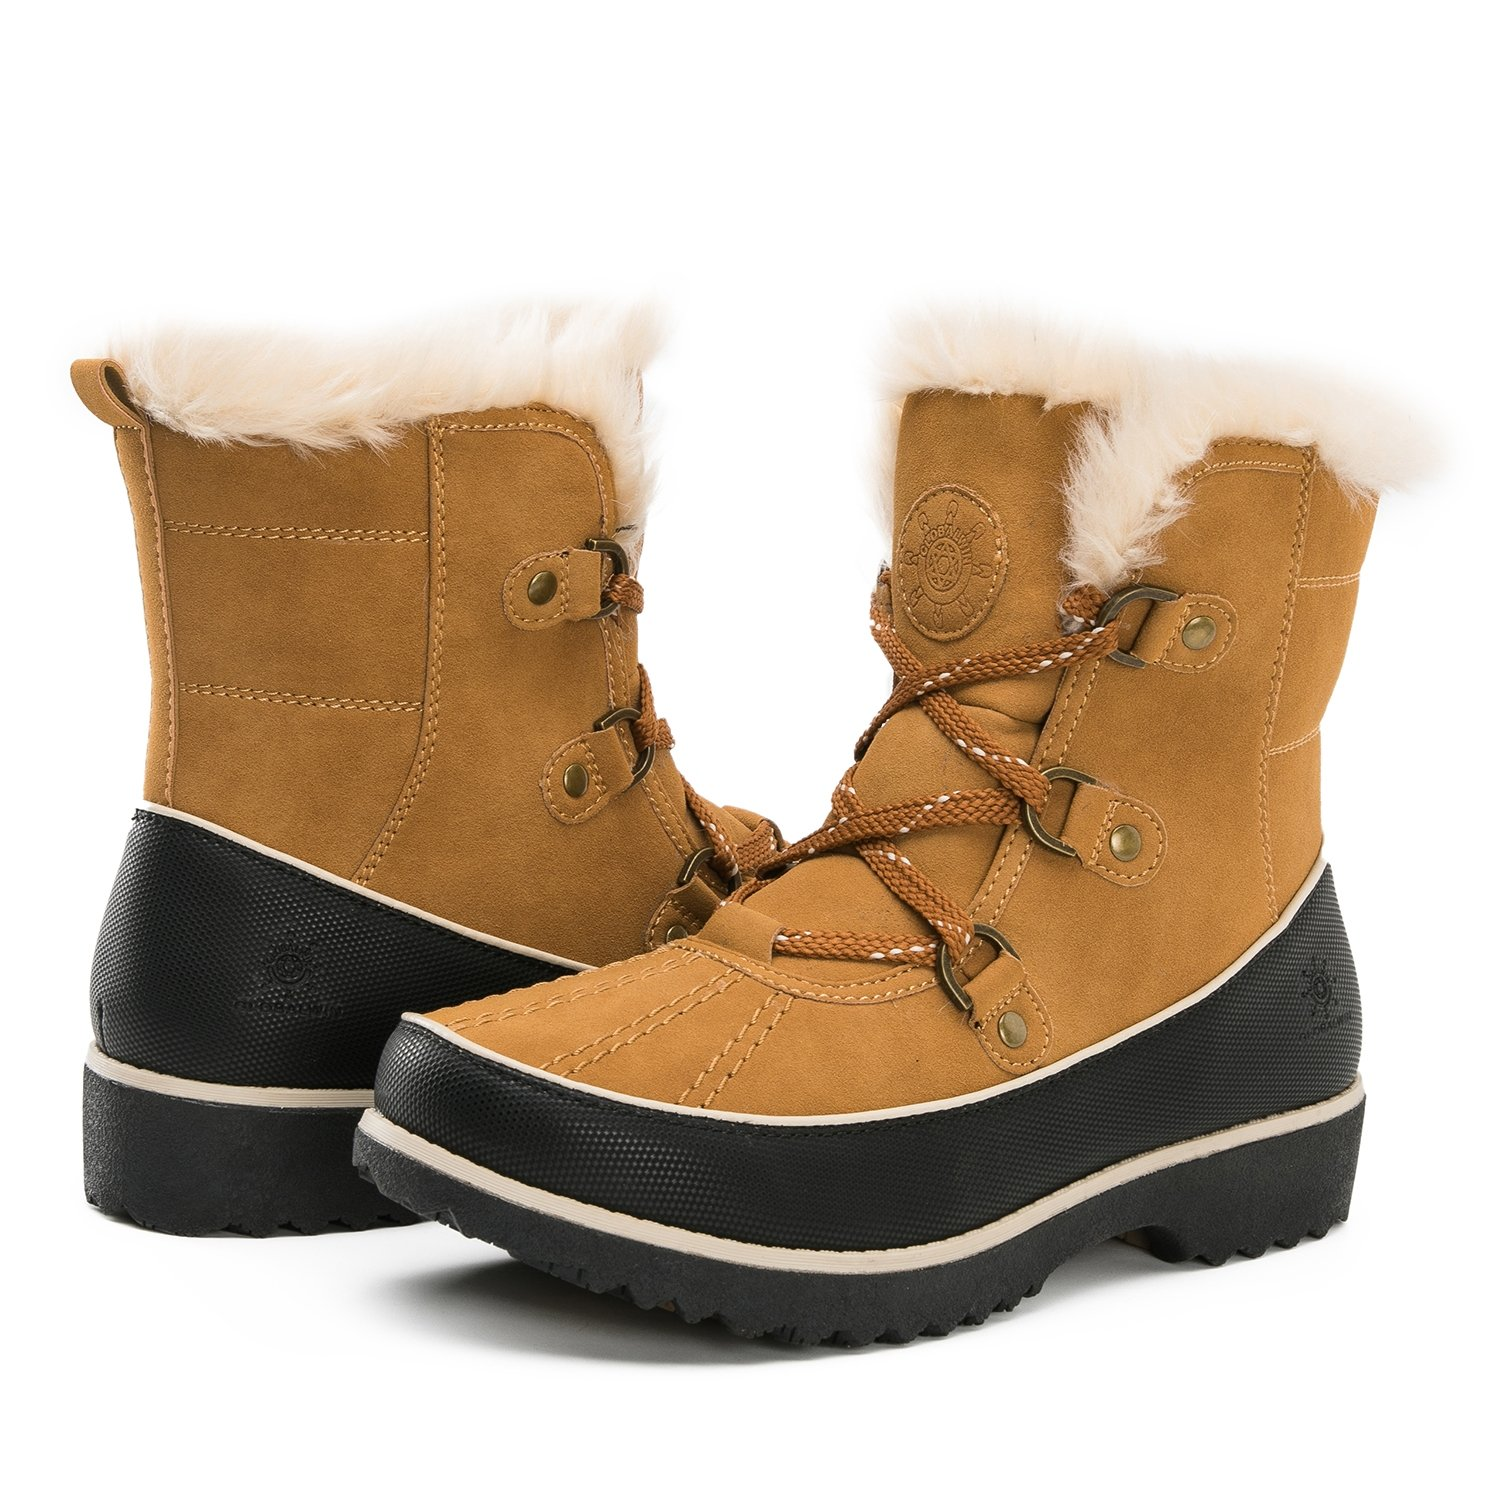 Global Win GLOBALWIN Women's Fur Trek Winter Boots B074T17LRQ 8.5 B(M) US|1728camel